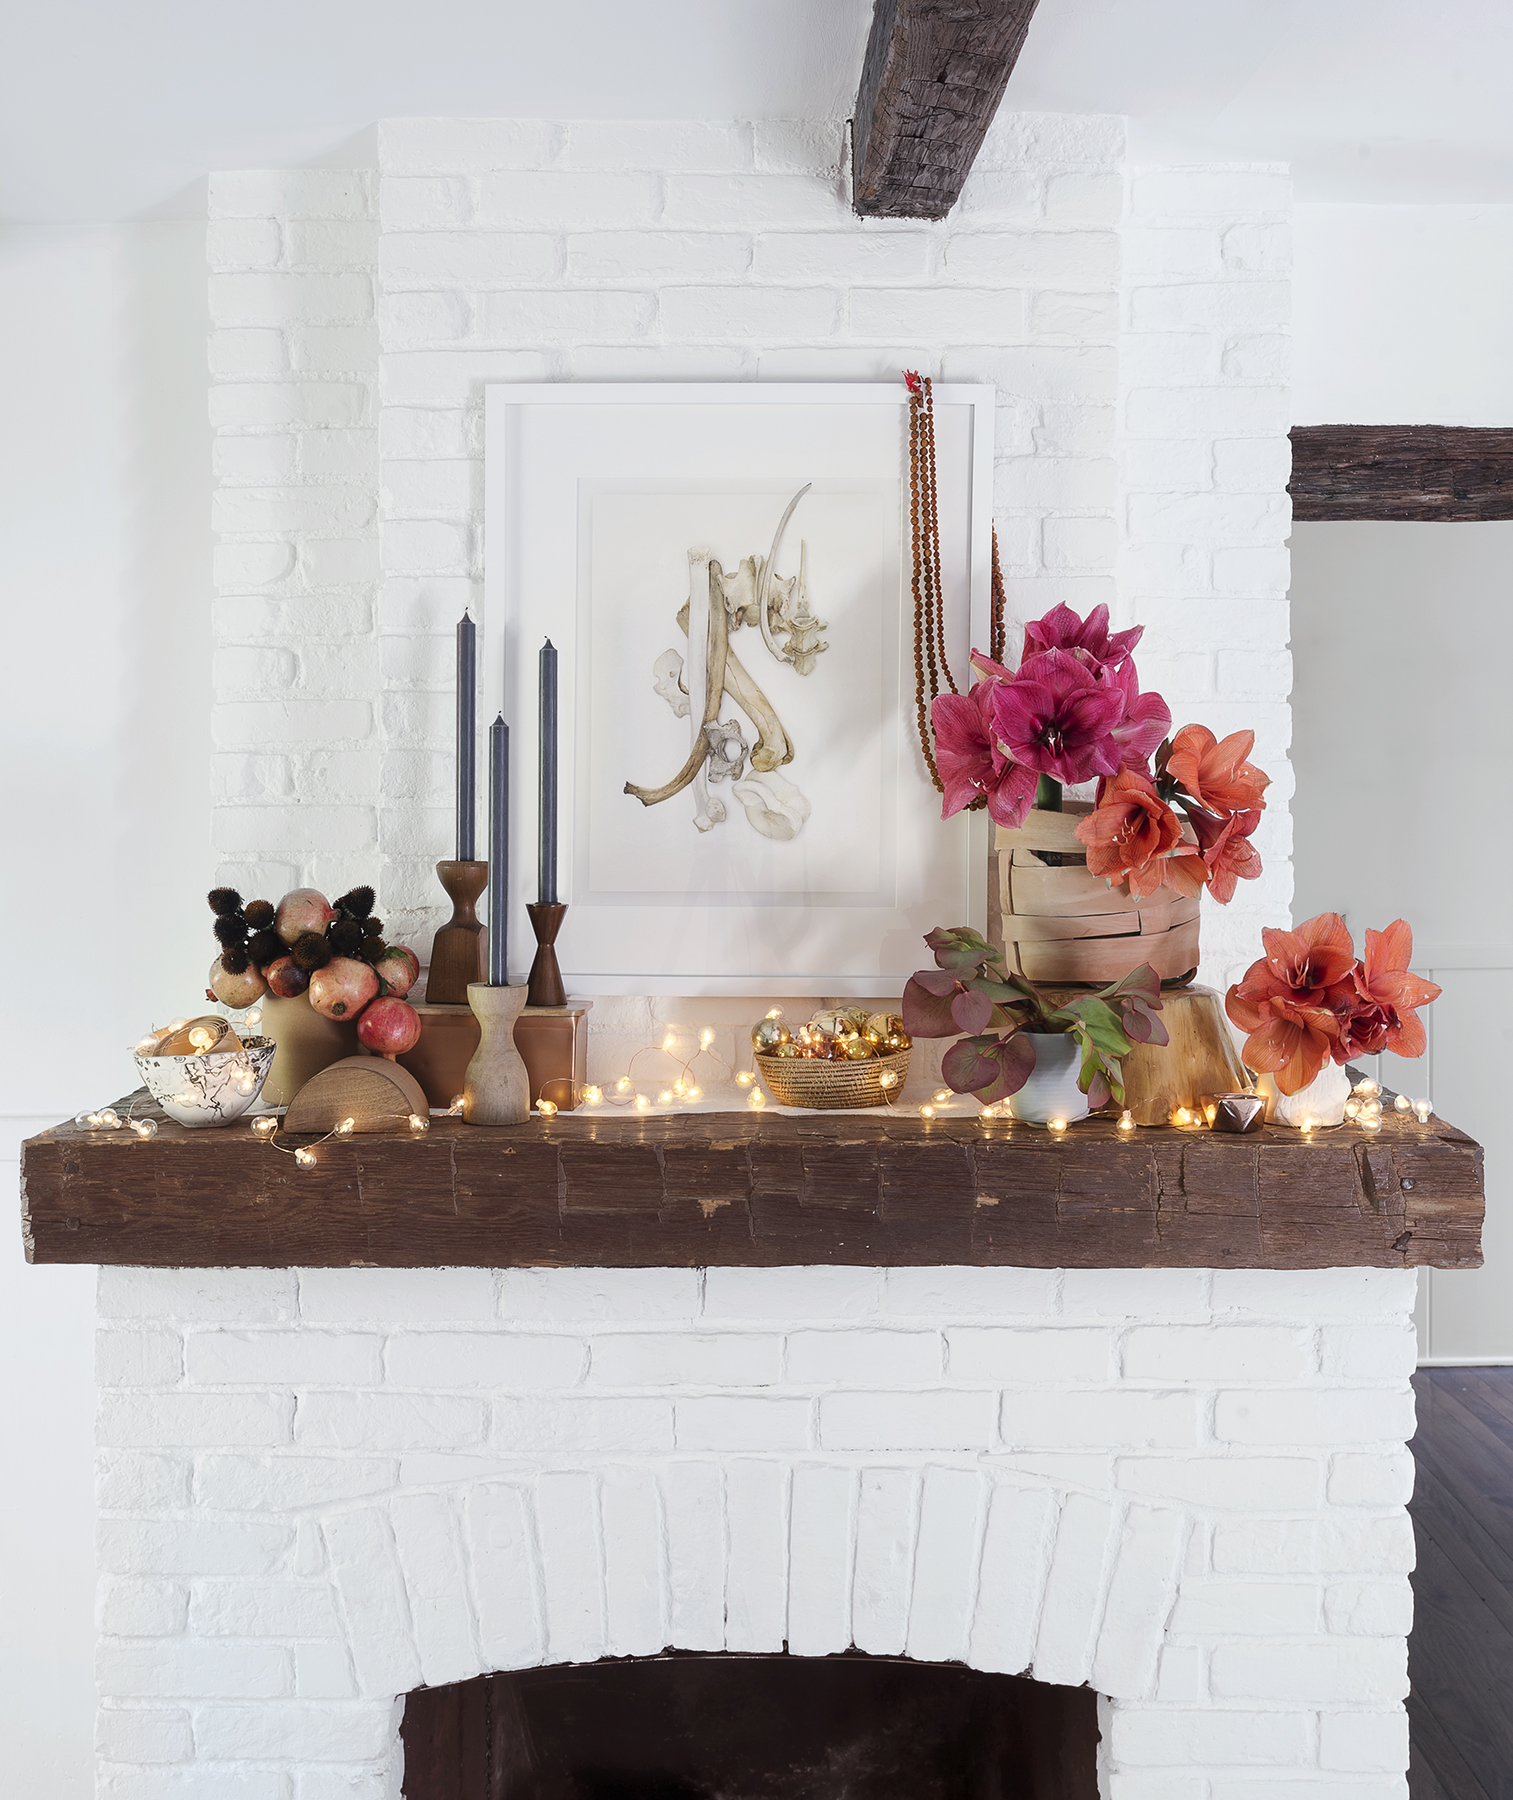 Mantel with floral and holiday decorations